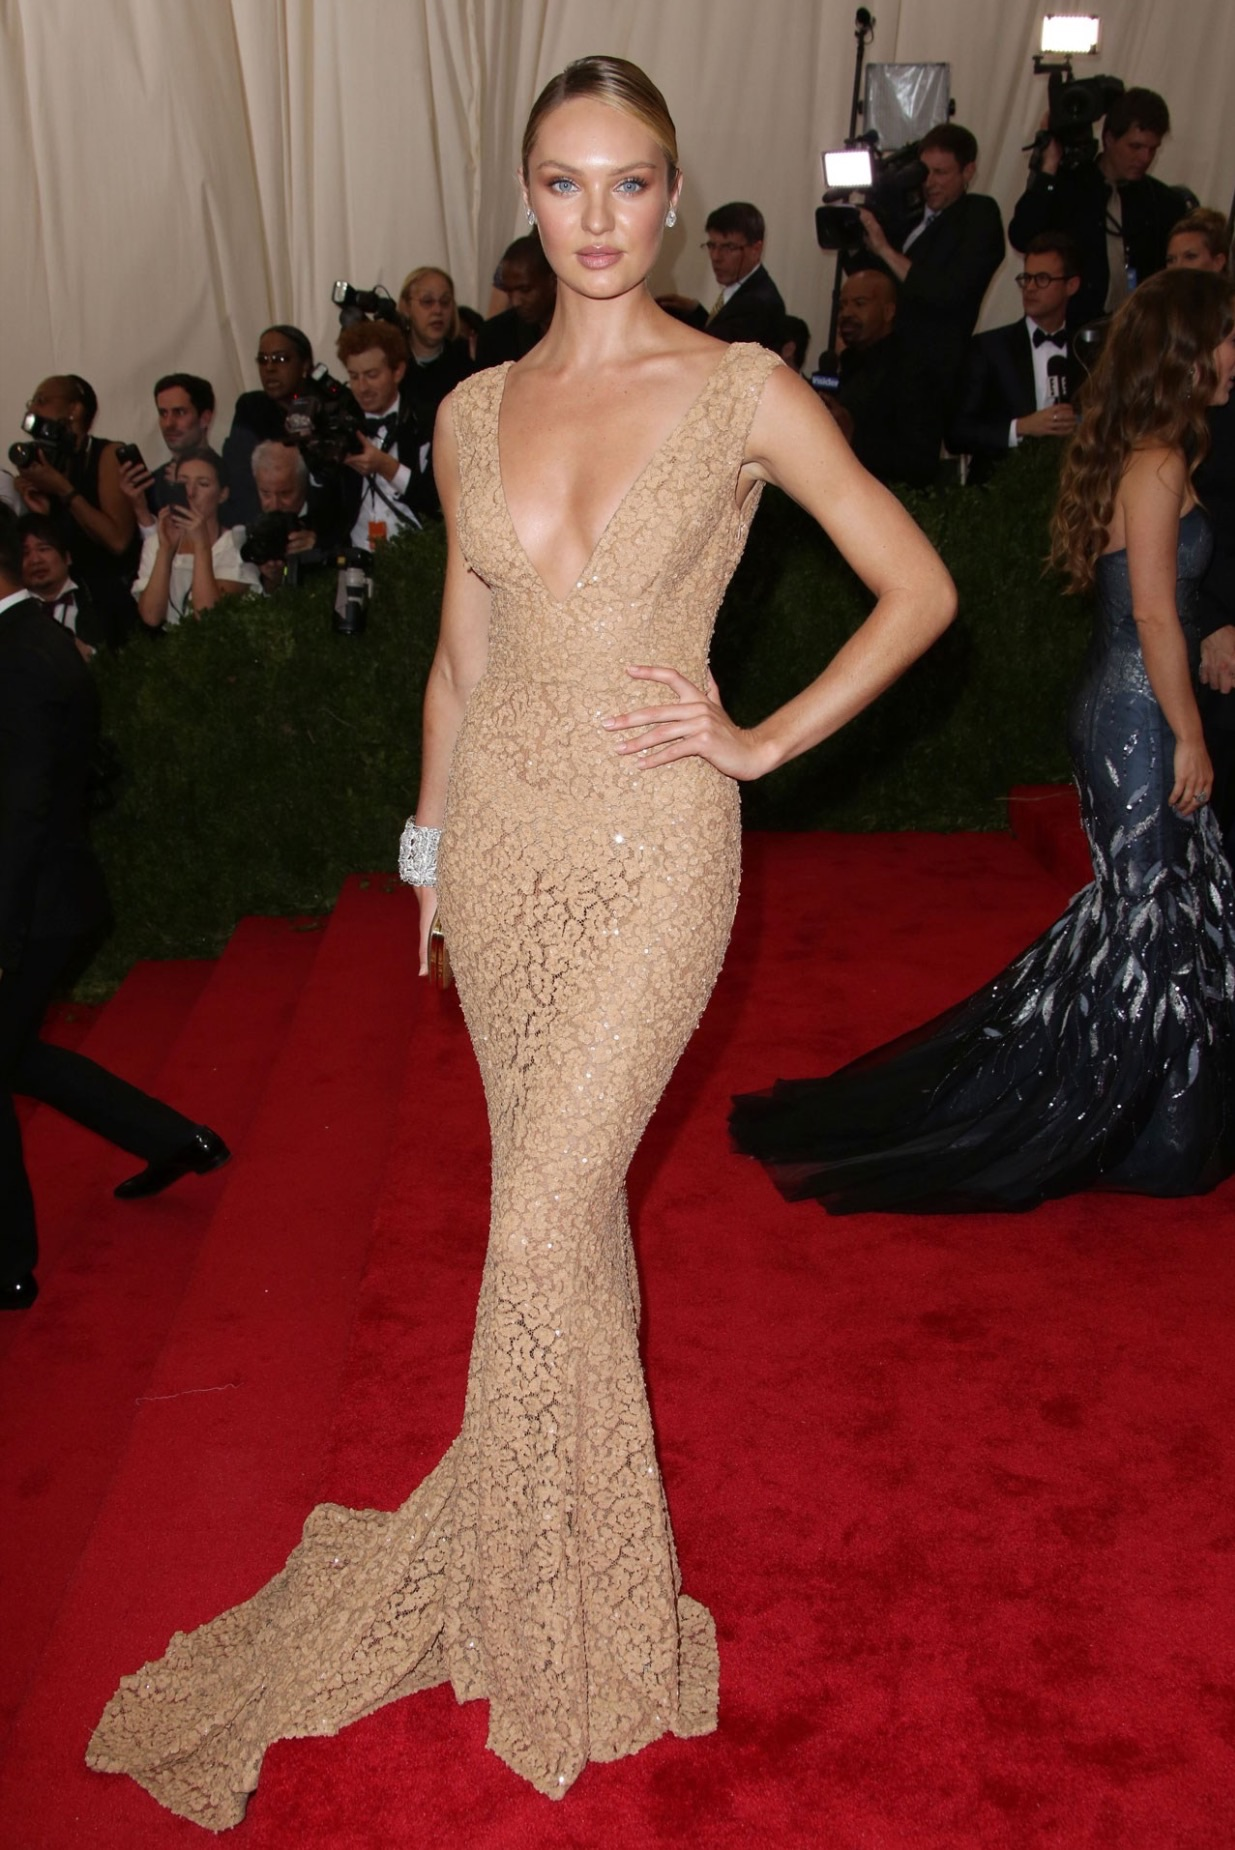 Candice-Swanepoel-in- michael-kors-The-Met-Gala-2015-